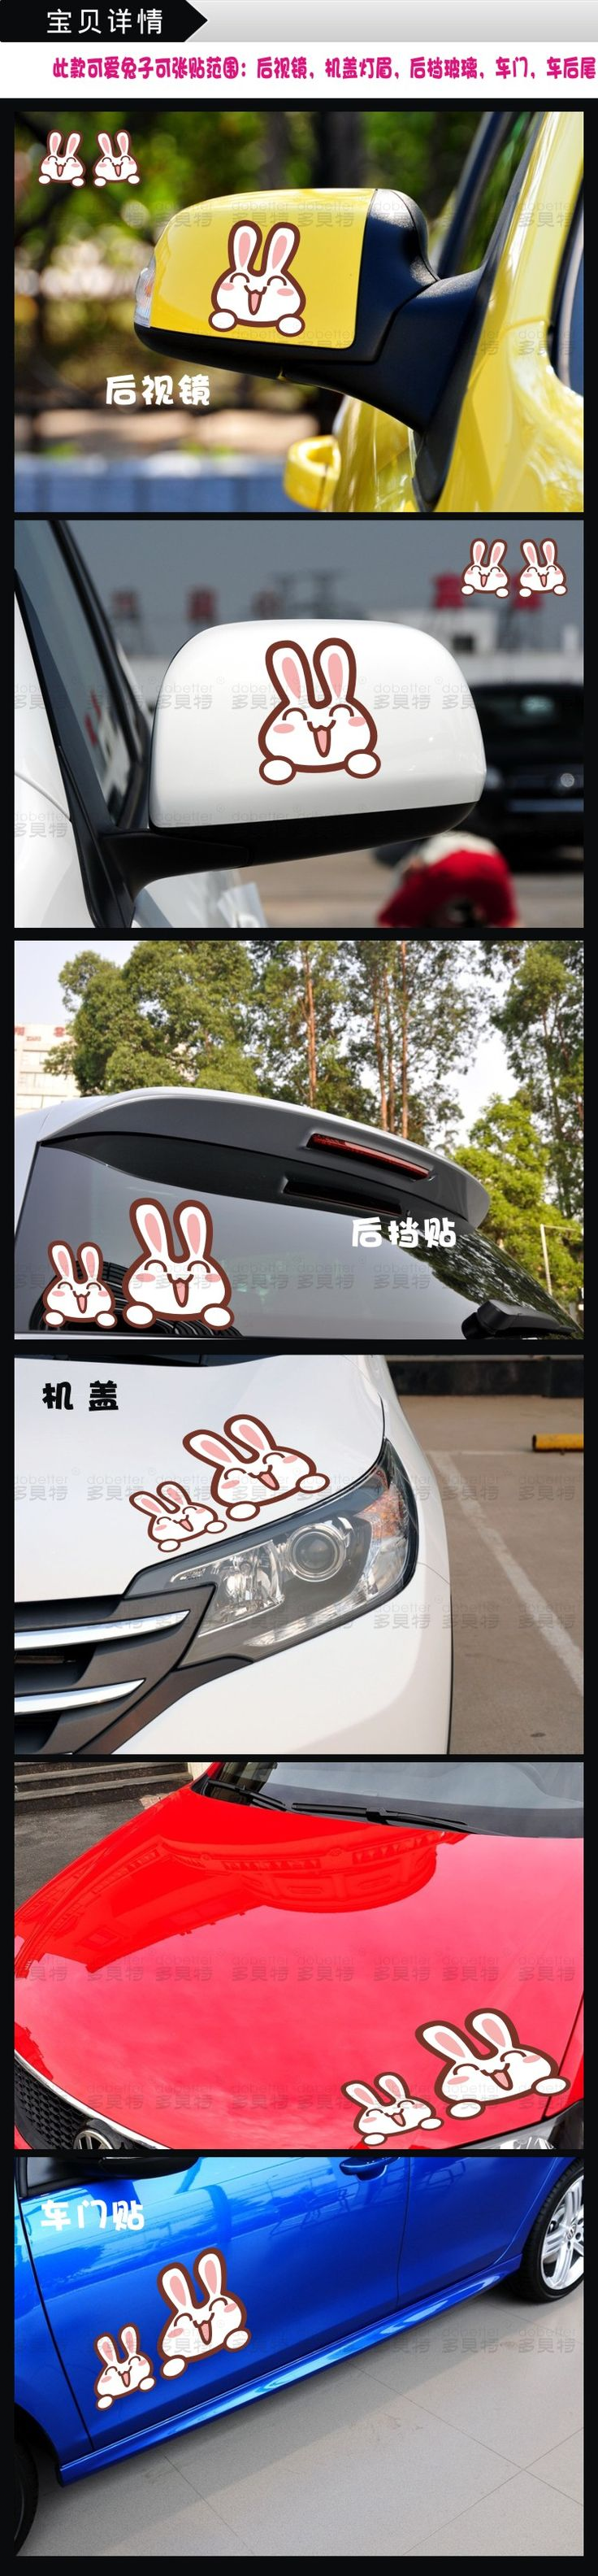 Car mirror sticker design - Aliexpress Com Buy Funny Car Stickers Car Sticker Rear View Mirror Personalized Car Stickers